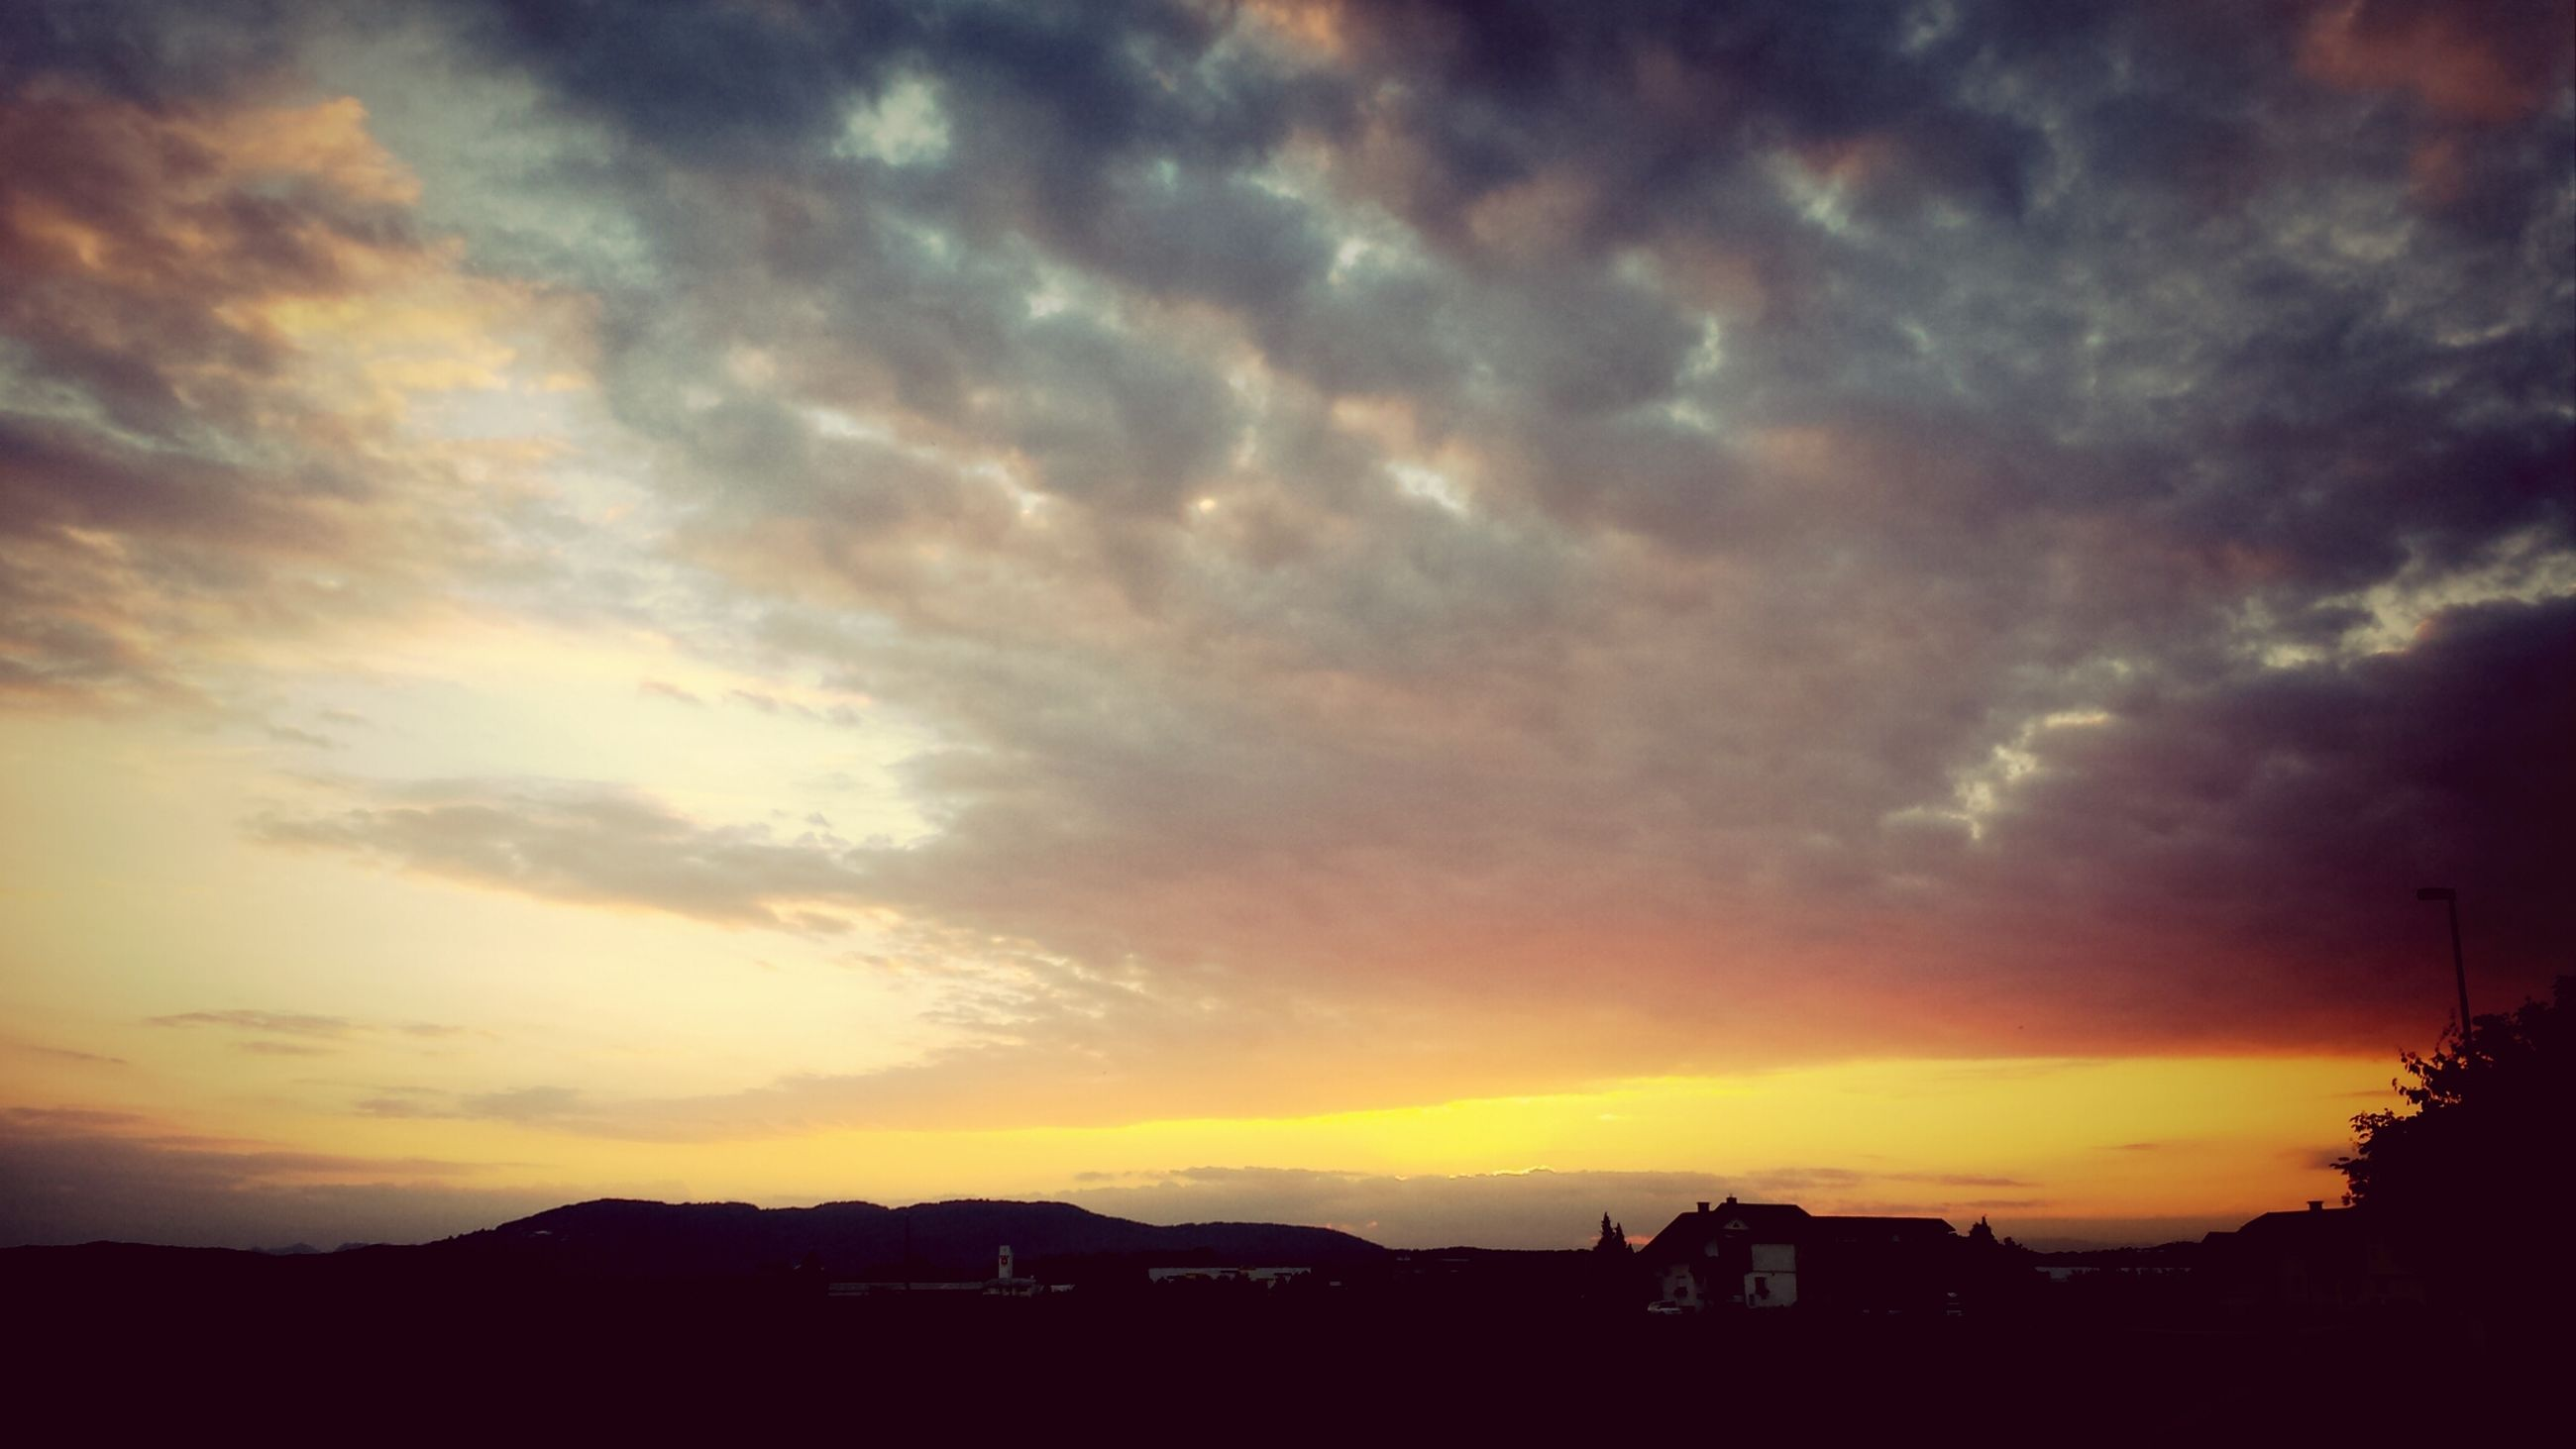 sunset, silhouette, sky, cloud - sky, orange color, beauty in nature, scenics, building exterior, dramatic sky, built structure, cloudy, architecture, tranquil scene, tranquility, nature, cloud, idyllic, moody sky, weather, house